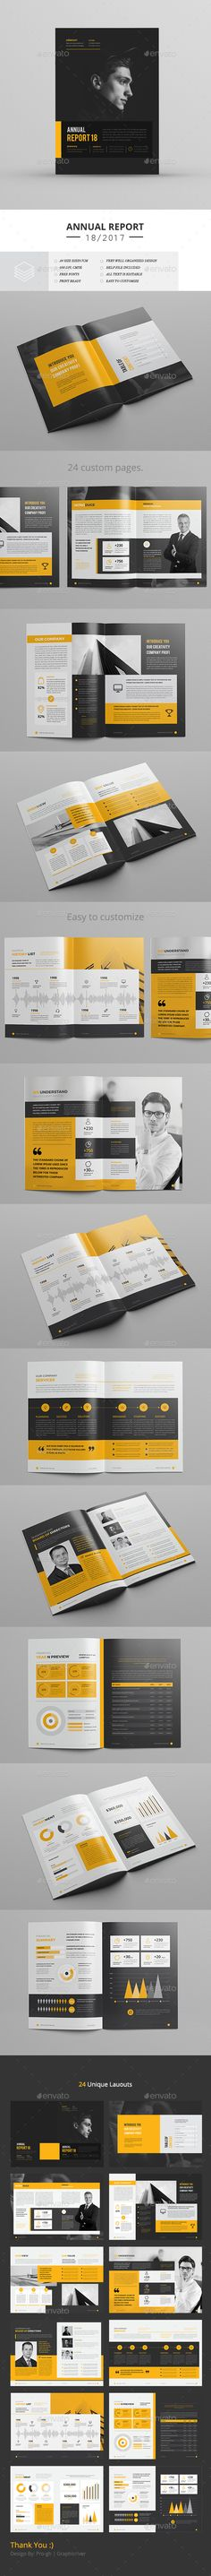 Annual Report — InDesign INDD #informational #minimal • Download ➝ https://graphicriver.net/item/annual-report/20040033?ref=pxcr